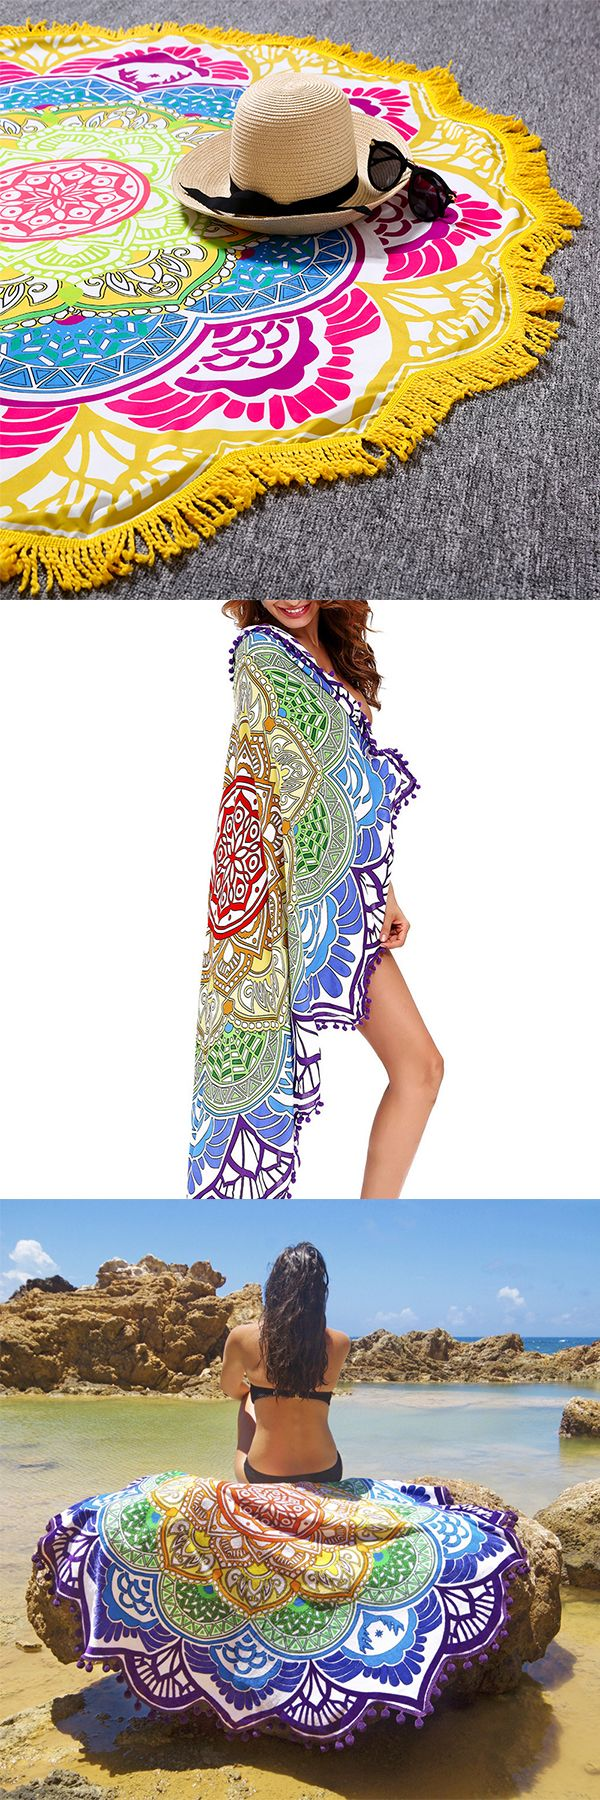 """US$15.99 + Free shipping. Bohemian Tapestry Lotus Beach Towels Yoga Mat Camping Mattress Bikini Cover.Size: 150cm x 150cm / 59.05"""" Material: Polyester. 9 styles for your choice. It also can be a tapestry wall hanging, yoga mat, tablecloth, blanket, bedspreads, camping mattress and bikini cover."""